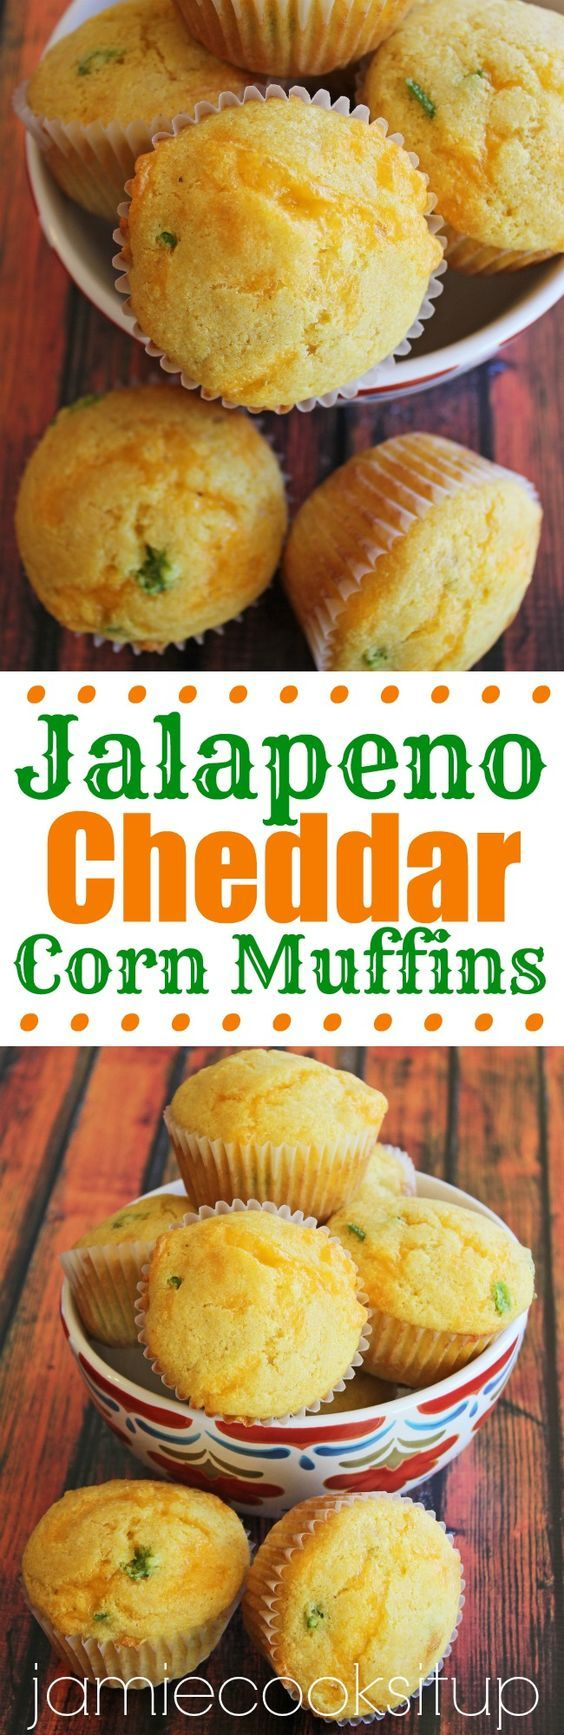 Corn muffins, Cheddar and Muffins on Pinterest